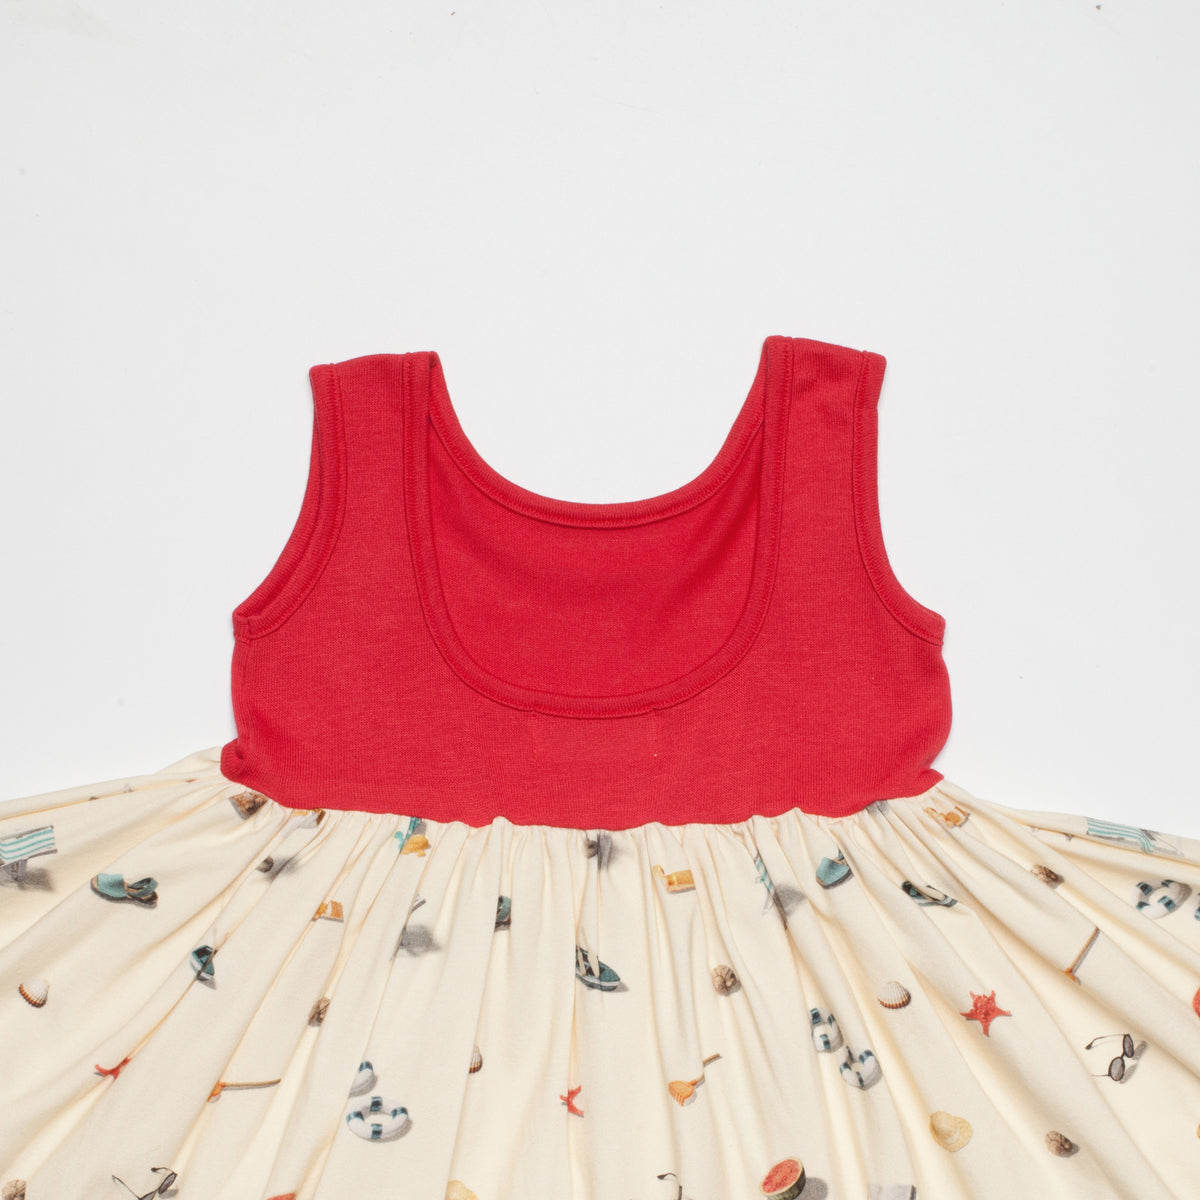 Red Beach Dress - 21€ (Antes 42€)